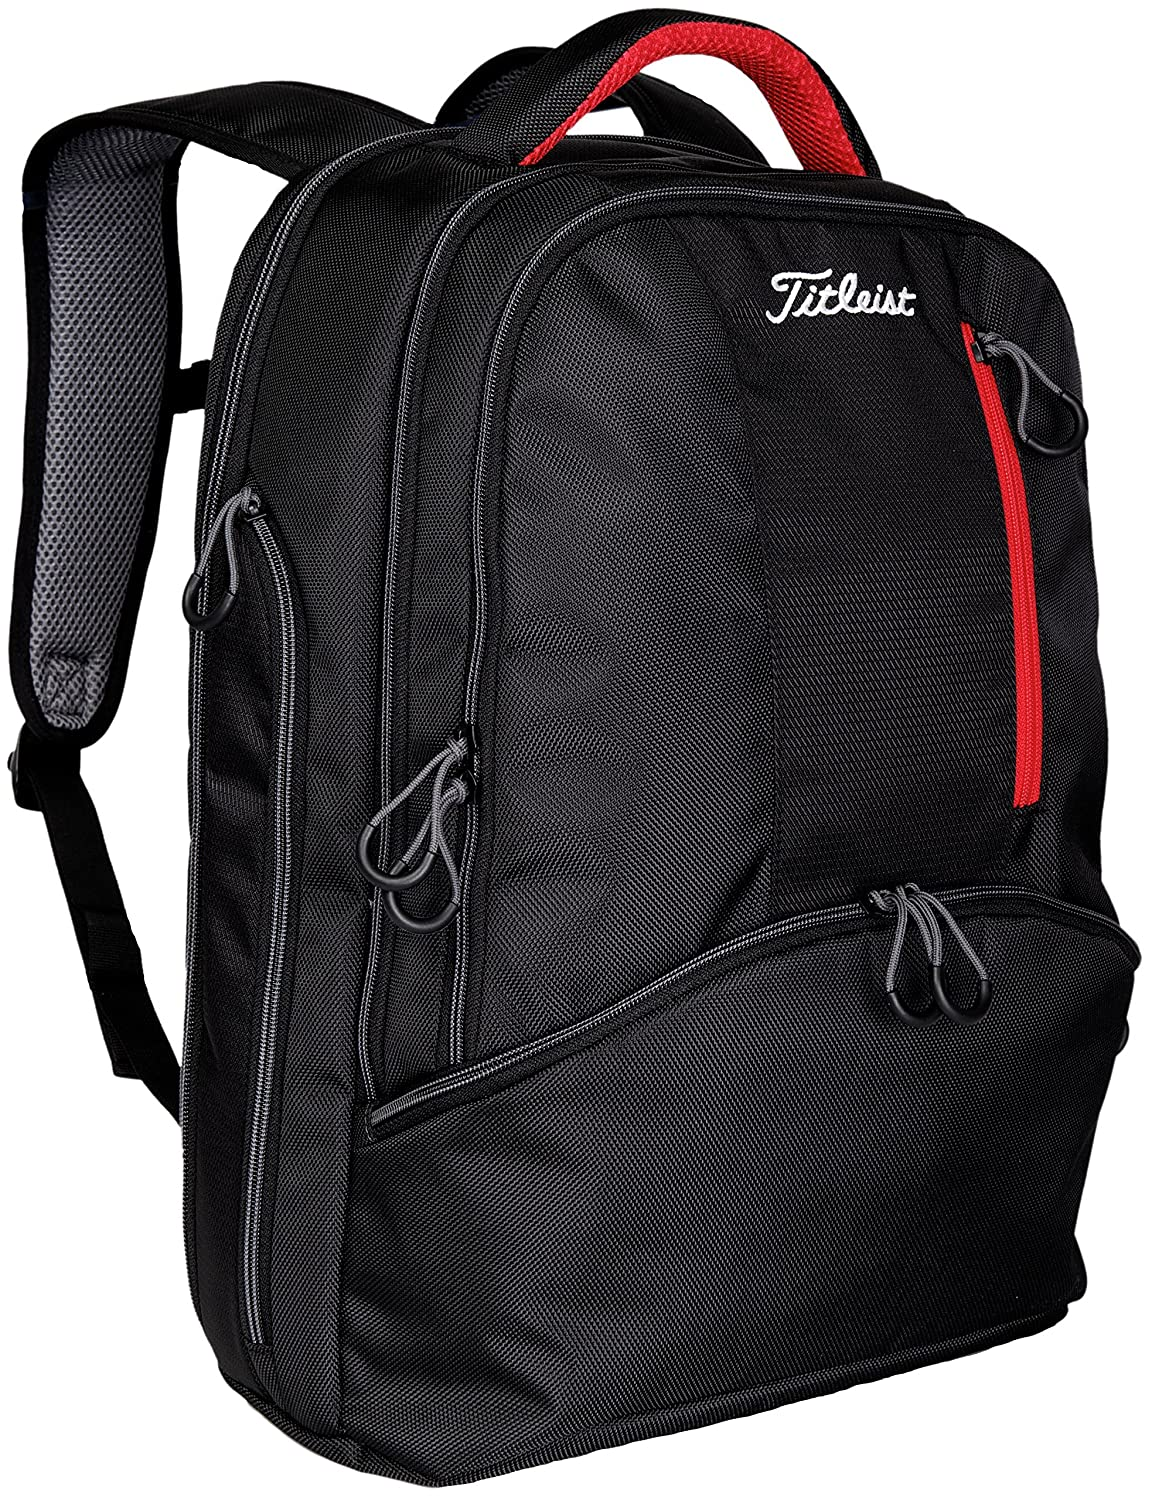 da68a6d128 Amazon.com  Titleist Essential Large Backpack  Sports   Outdoors